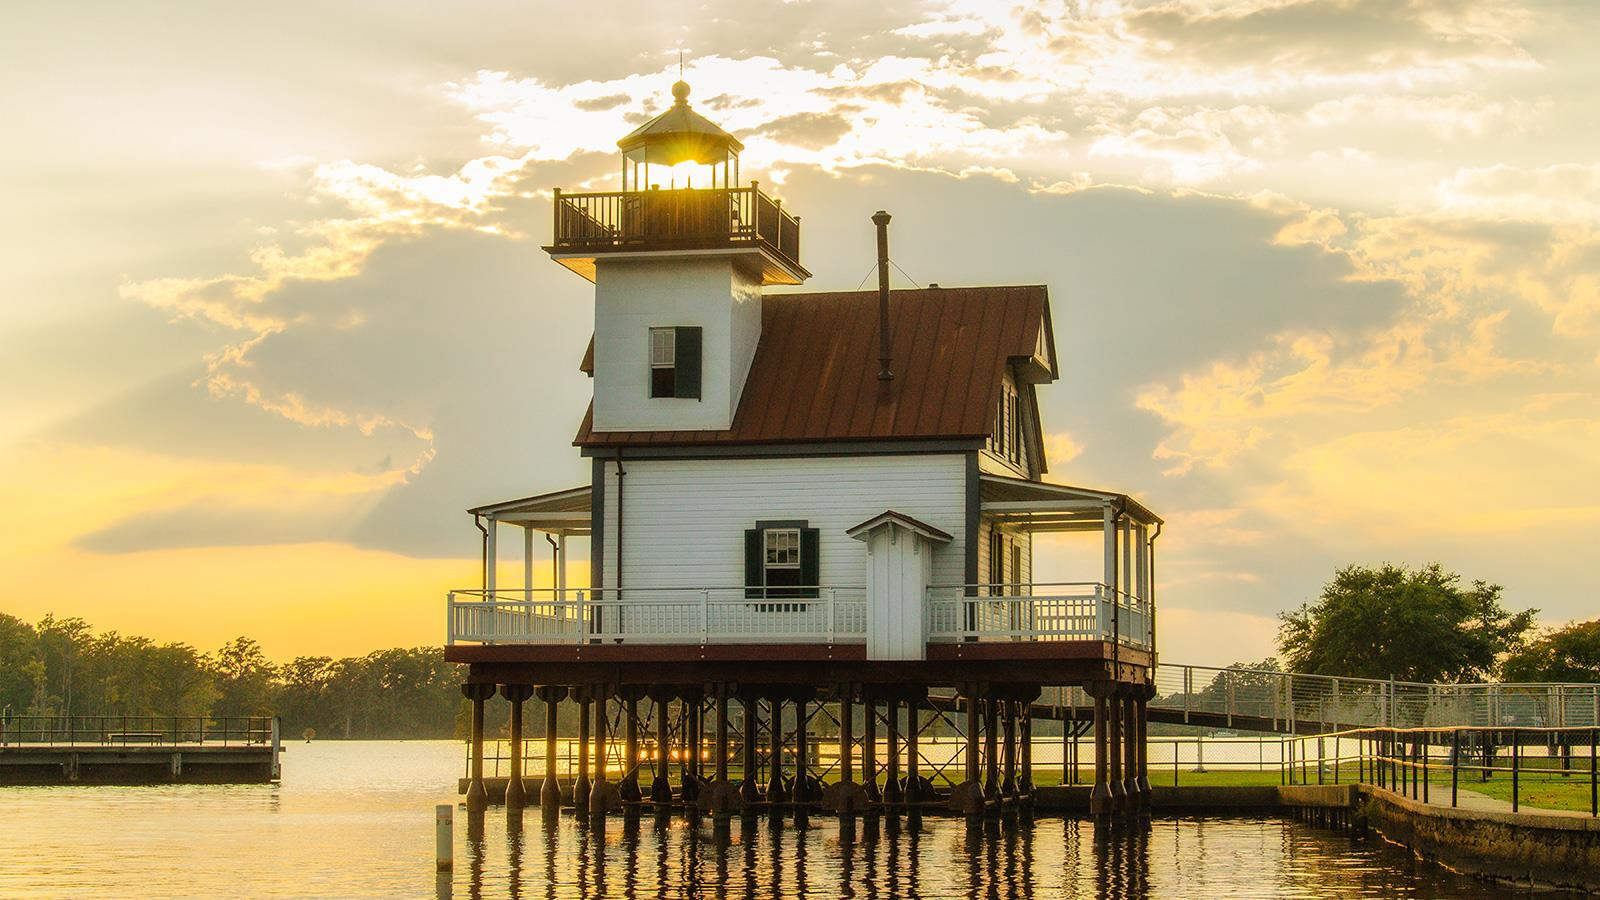 Roanoke River Lighthouse, Edenton NC